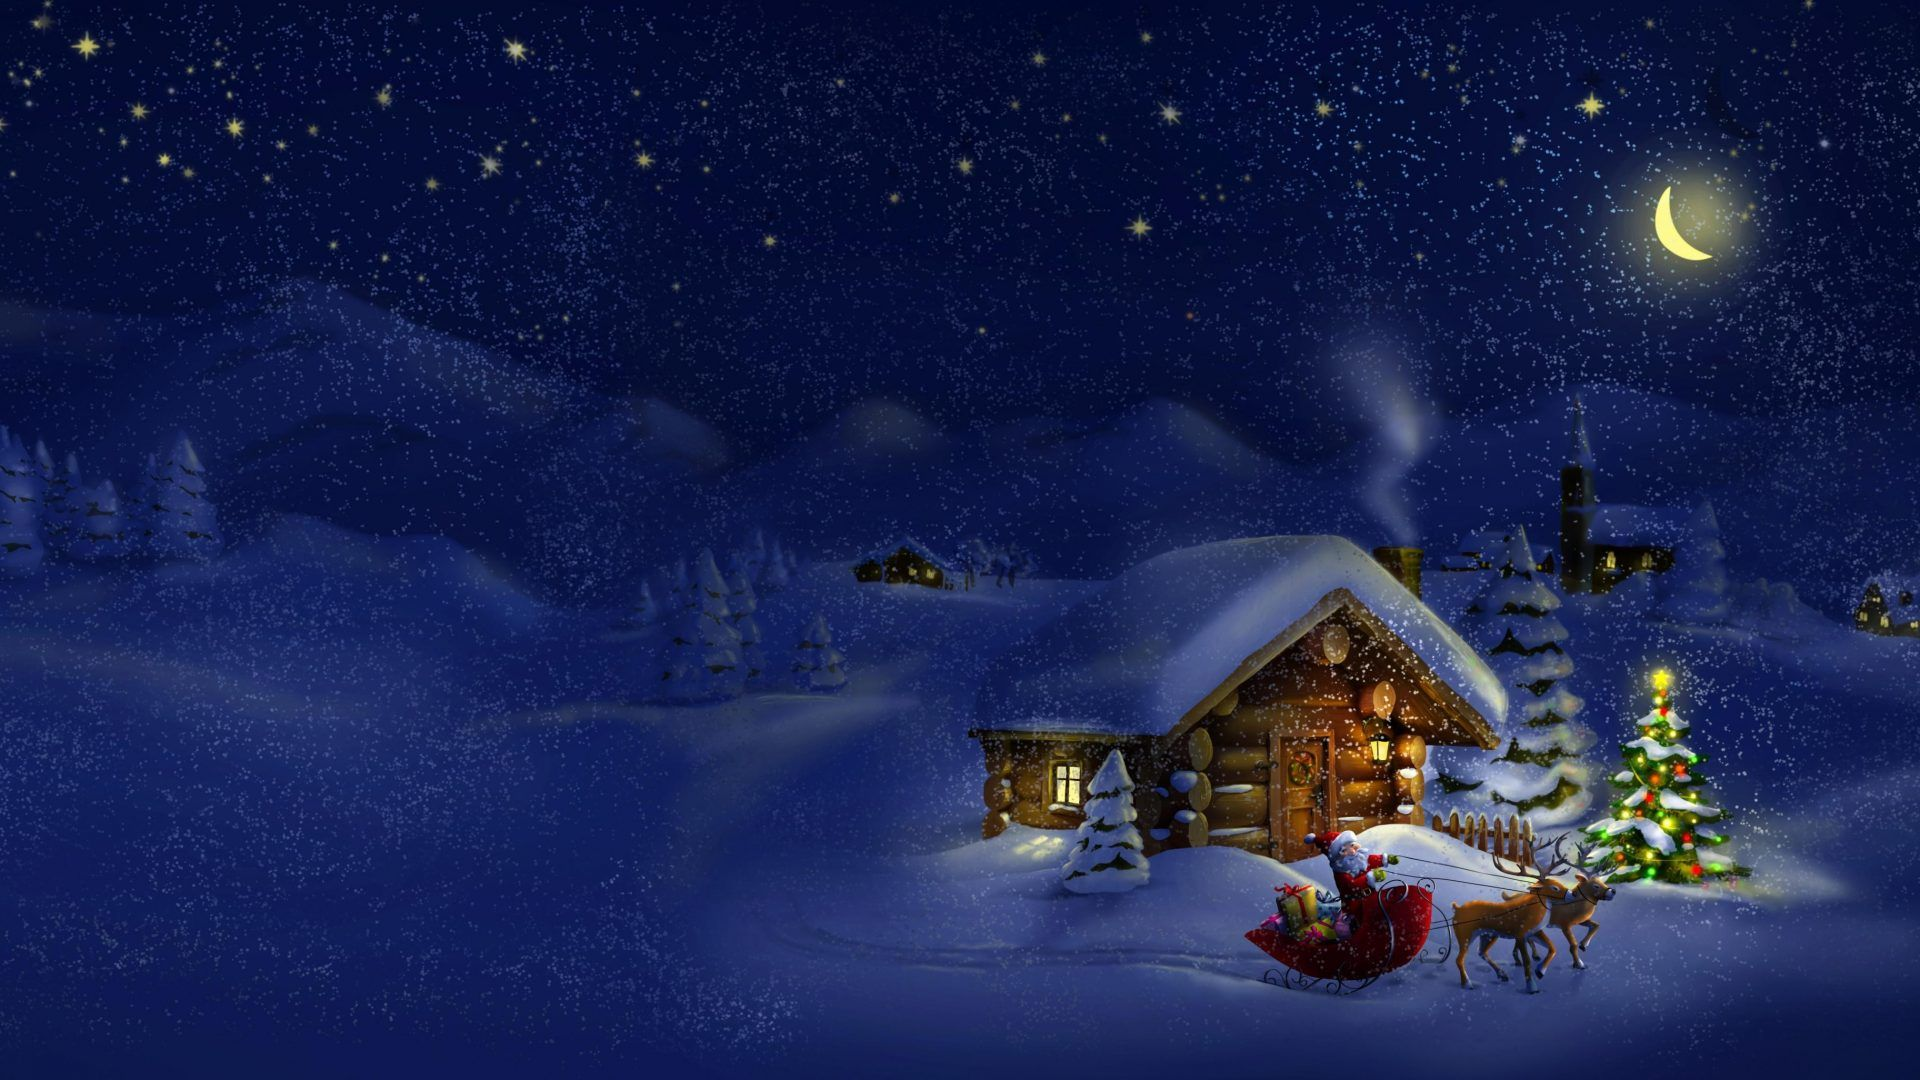 XiNature.com Eve Winter Snow Merry Magic Evening Santa